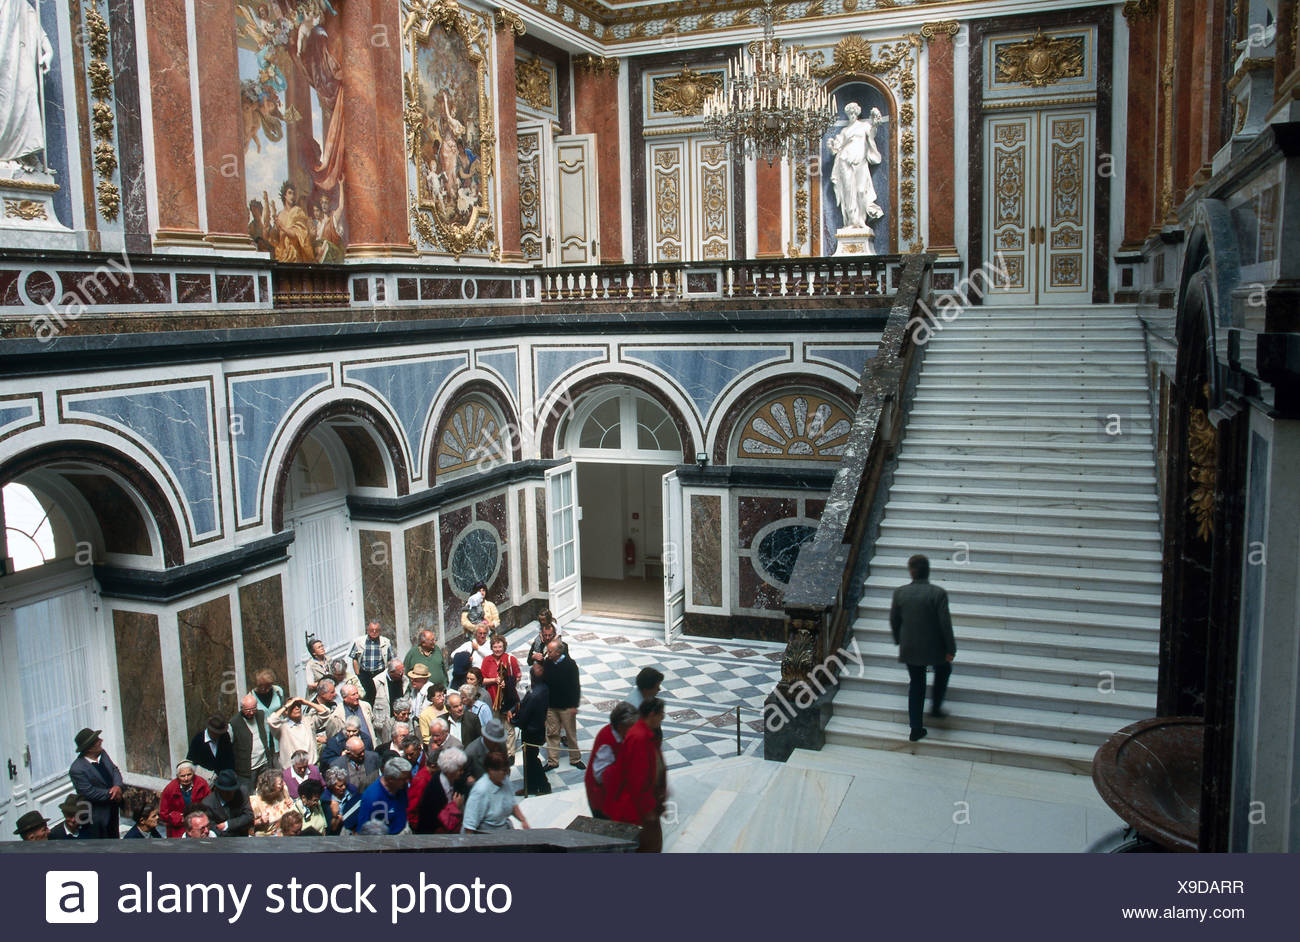 Tourists in castle, Herrenchiemsee Castle, Herreninsel, Bavaria, Germany - Stock Image